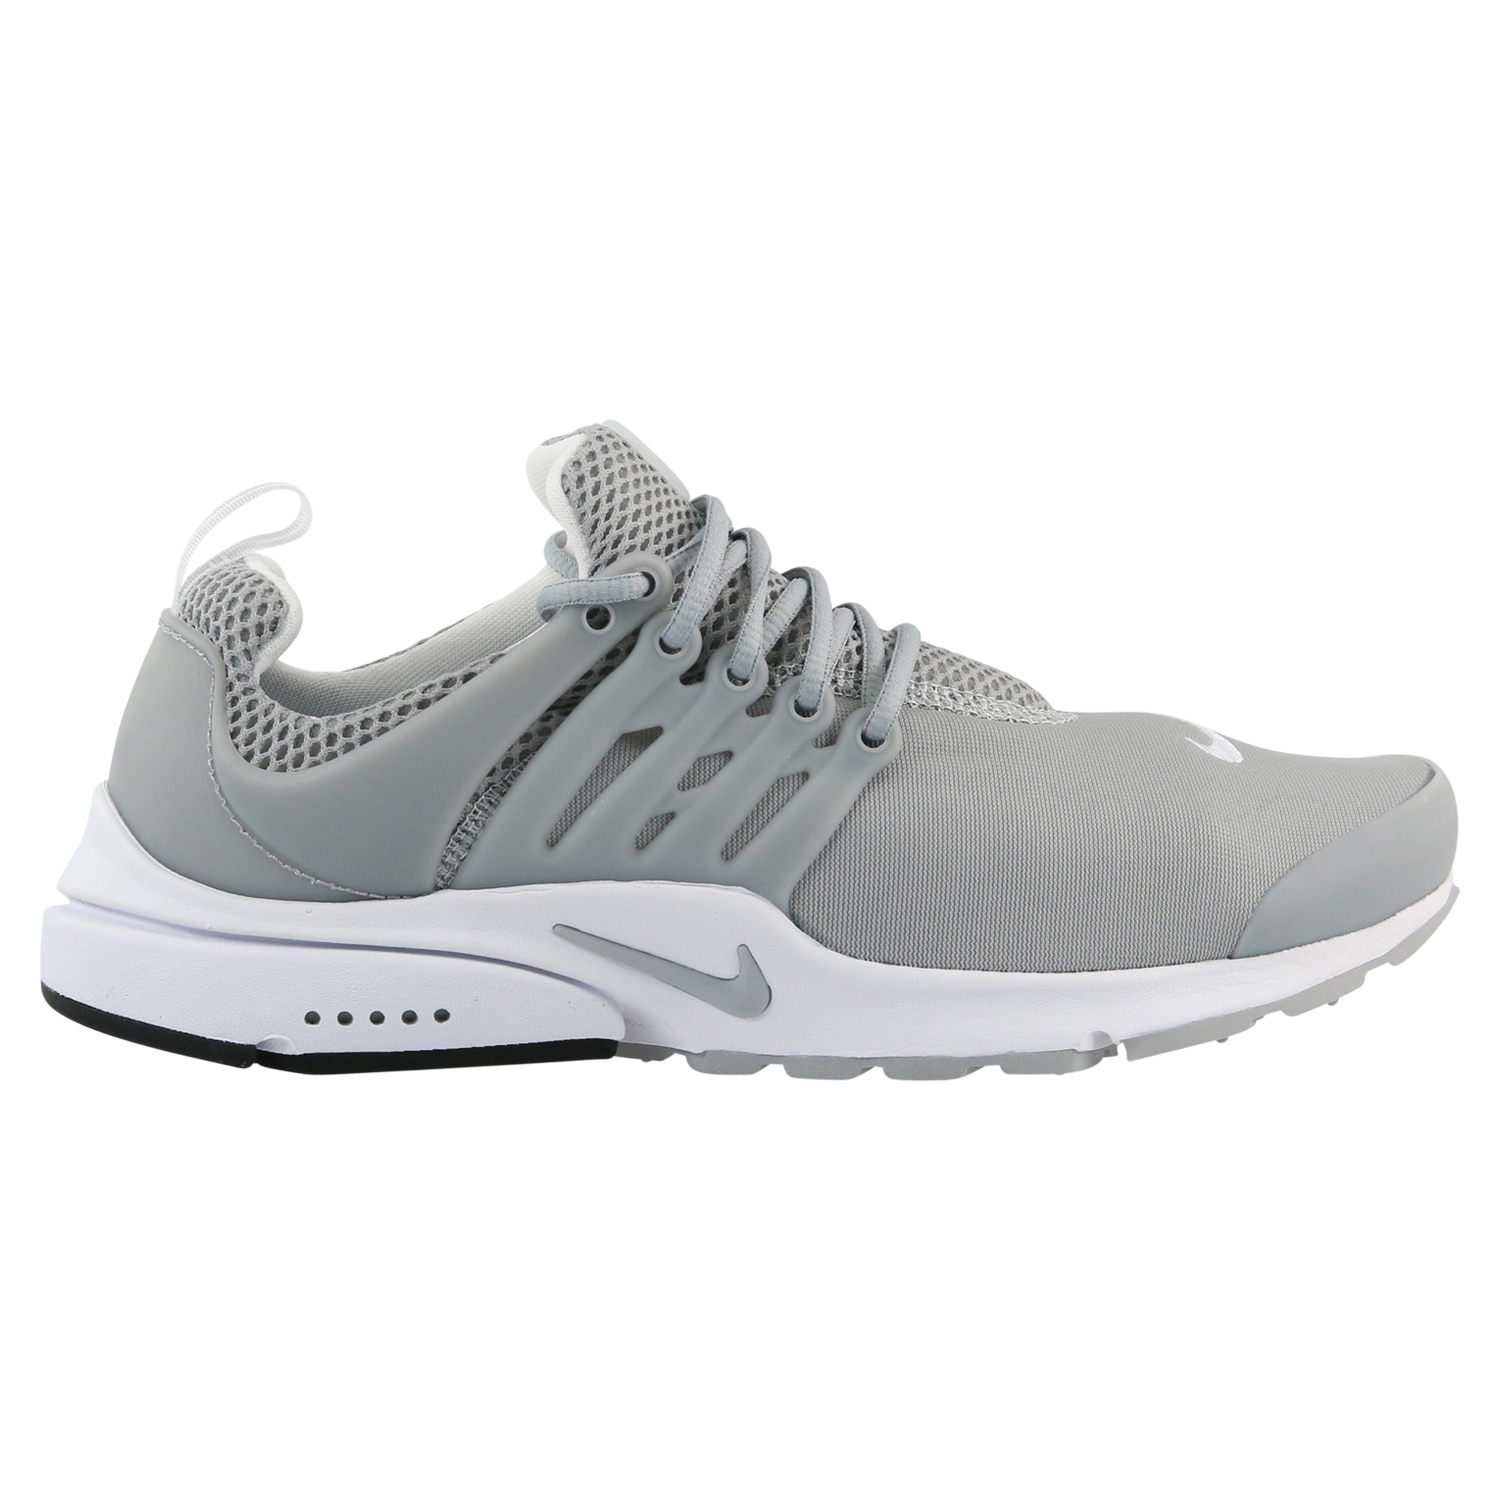 nike air presto essential sneaker turnschuhe schuhe grau. Black Bedroom Furniture Sets. Home Design Ideas